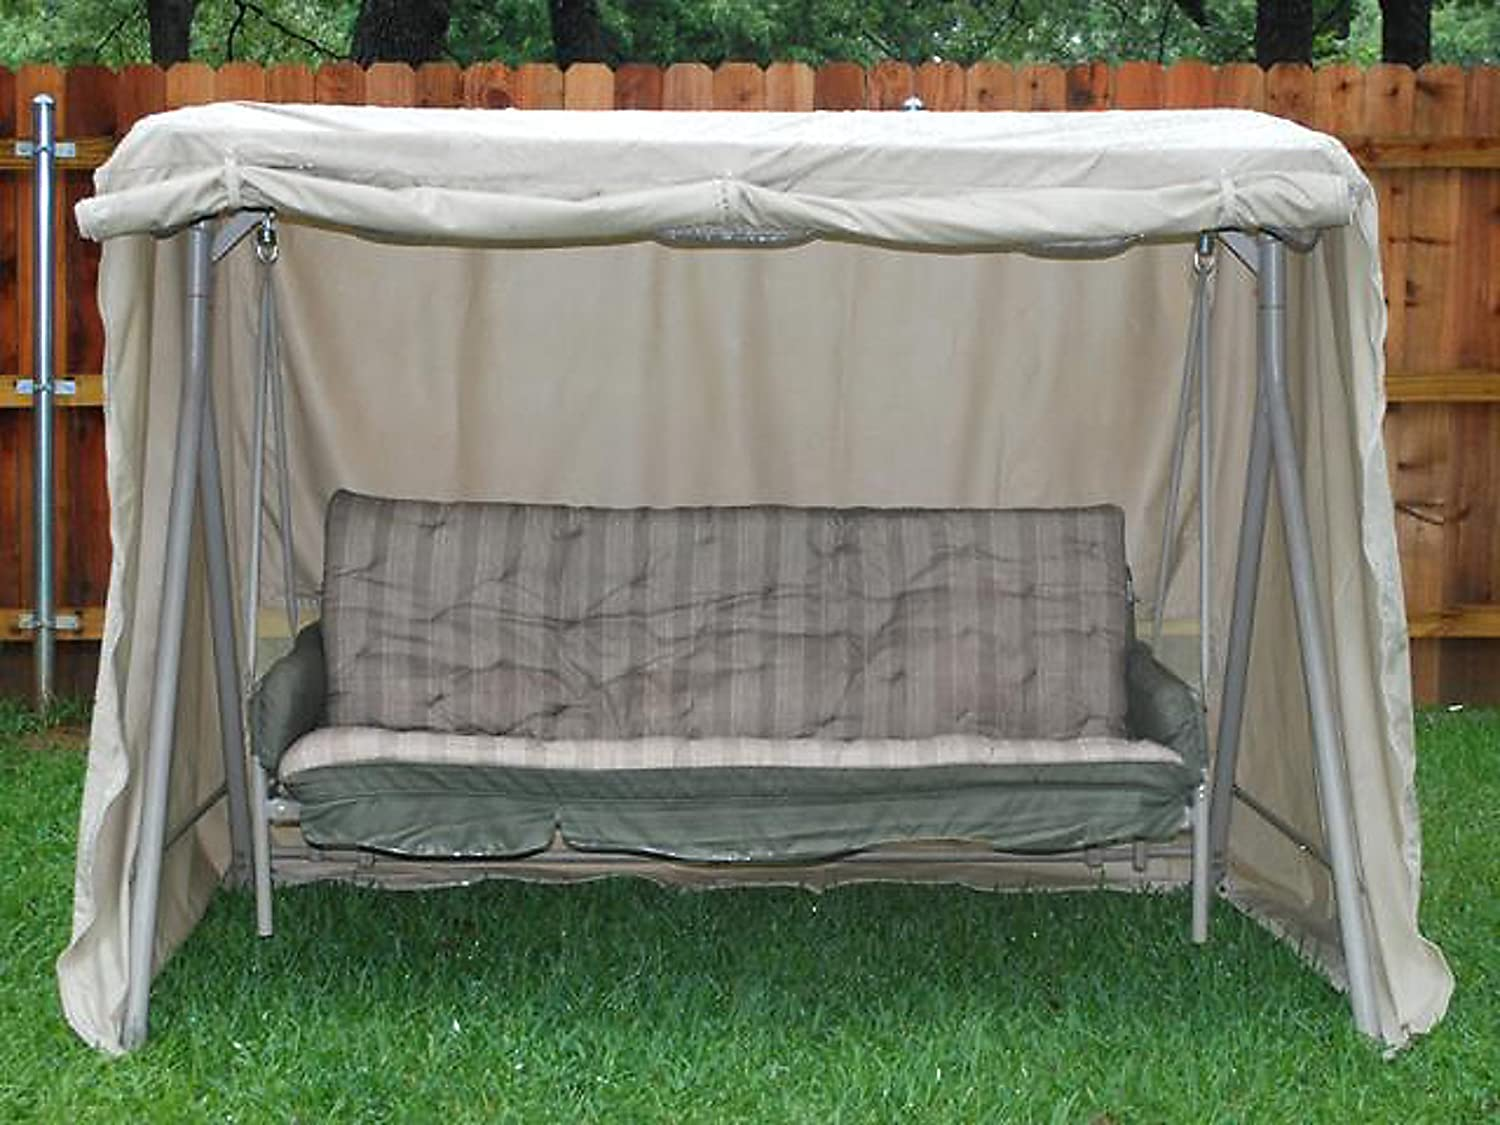 Amazon.com : CoverMates   Canopy Swing Cover   86W X 50D X 70H   Elite  Collection   3 YR Warranty   Year Around Protection   Khaki : Outdoor  Canopies ...